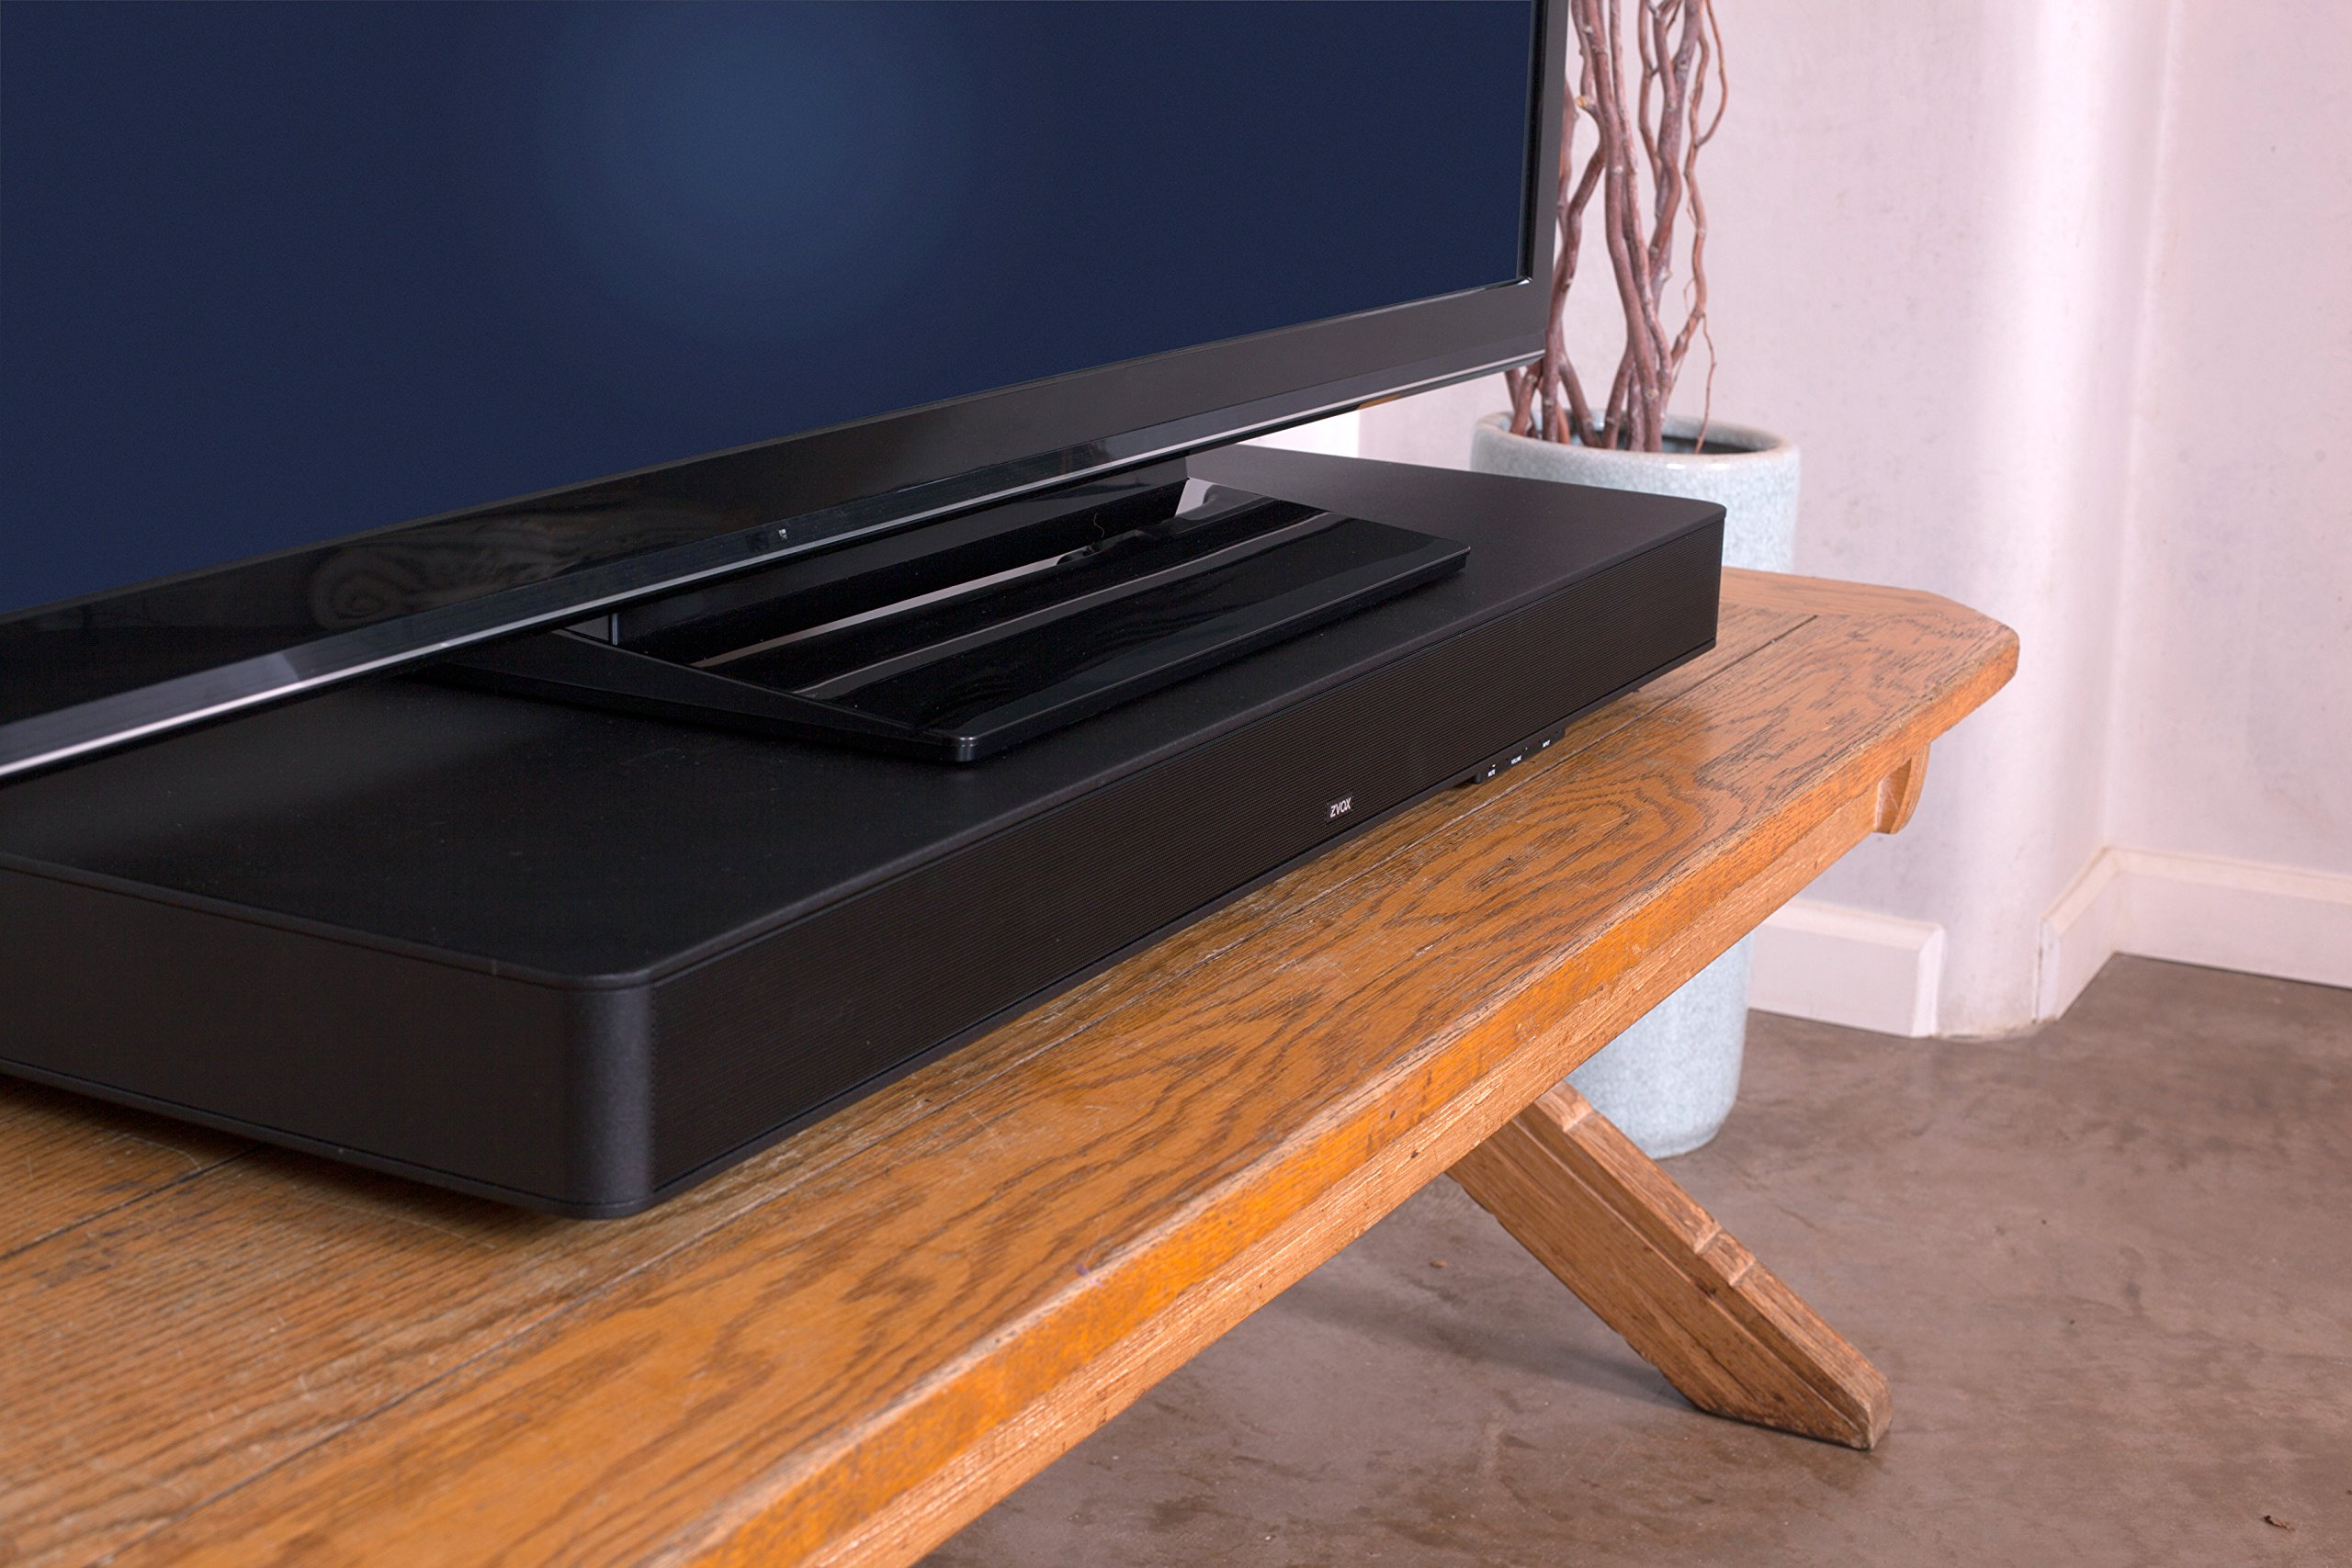 "ZVOX SoundBase 770 42"" Sound Bar with 3 Built-In Subwoofers, Bluetooth, AccuVoice by ZVOX"